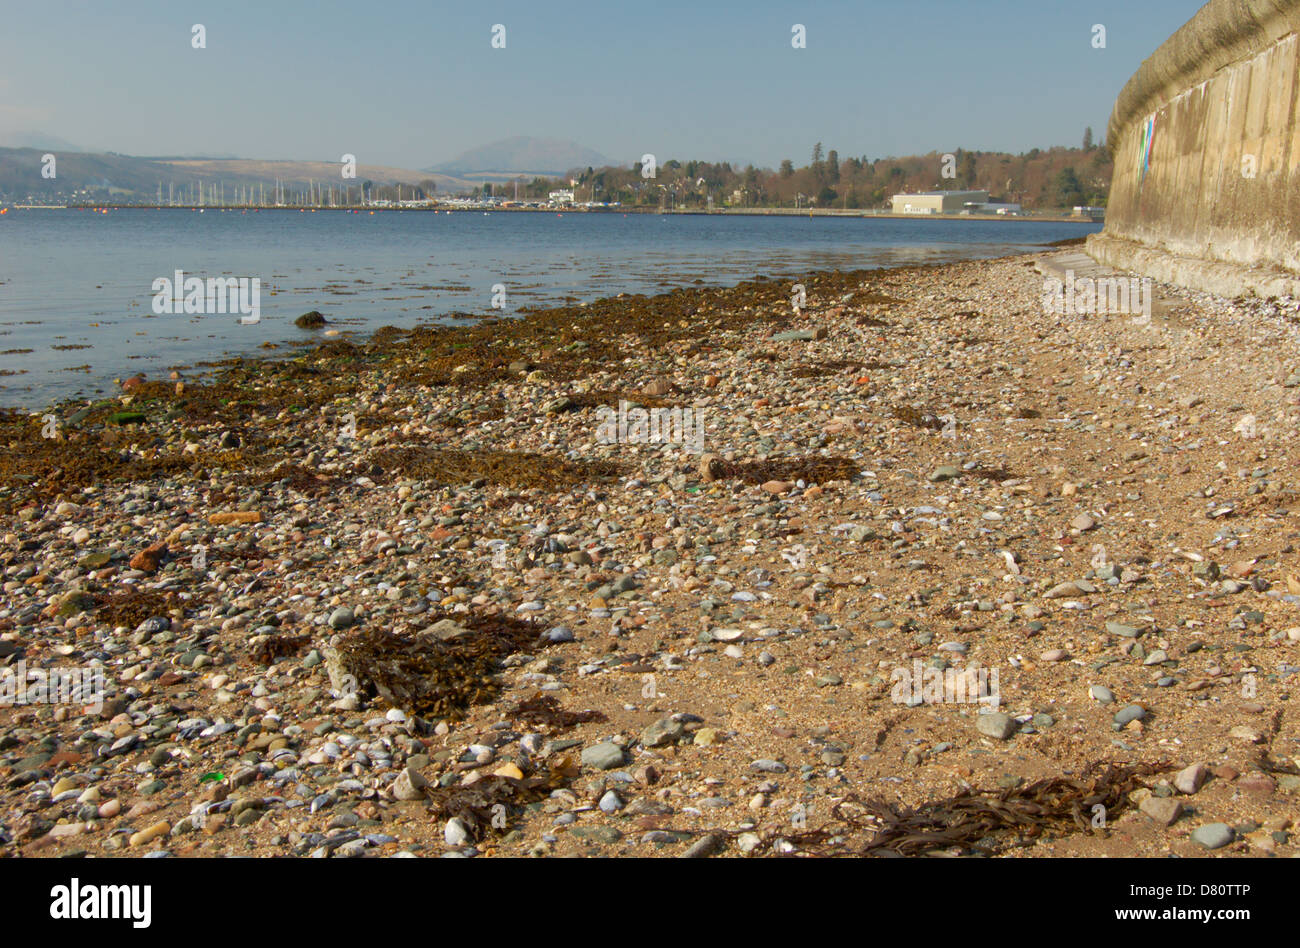 Beach at Helensburgh on the Gareloch - Stock Image